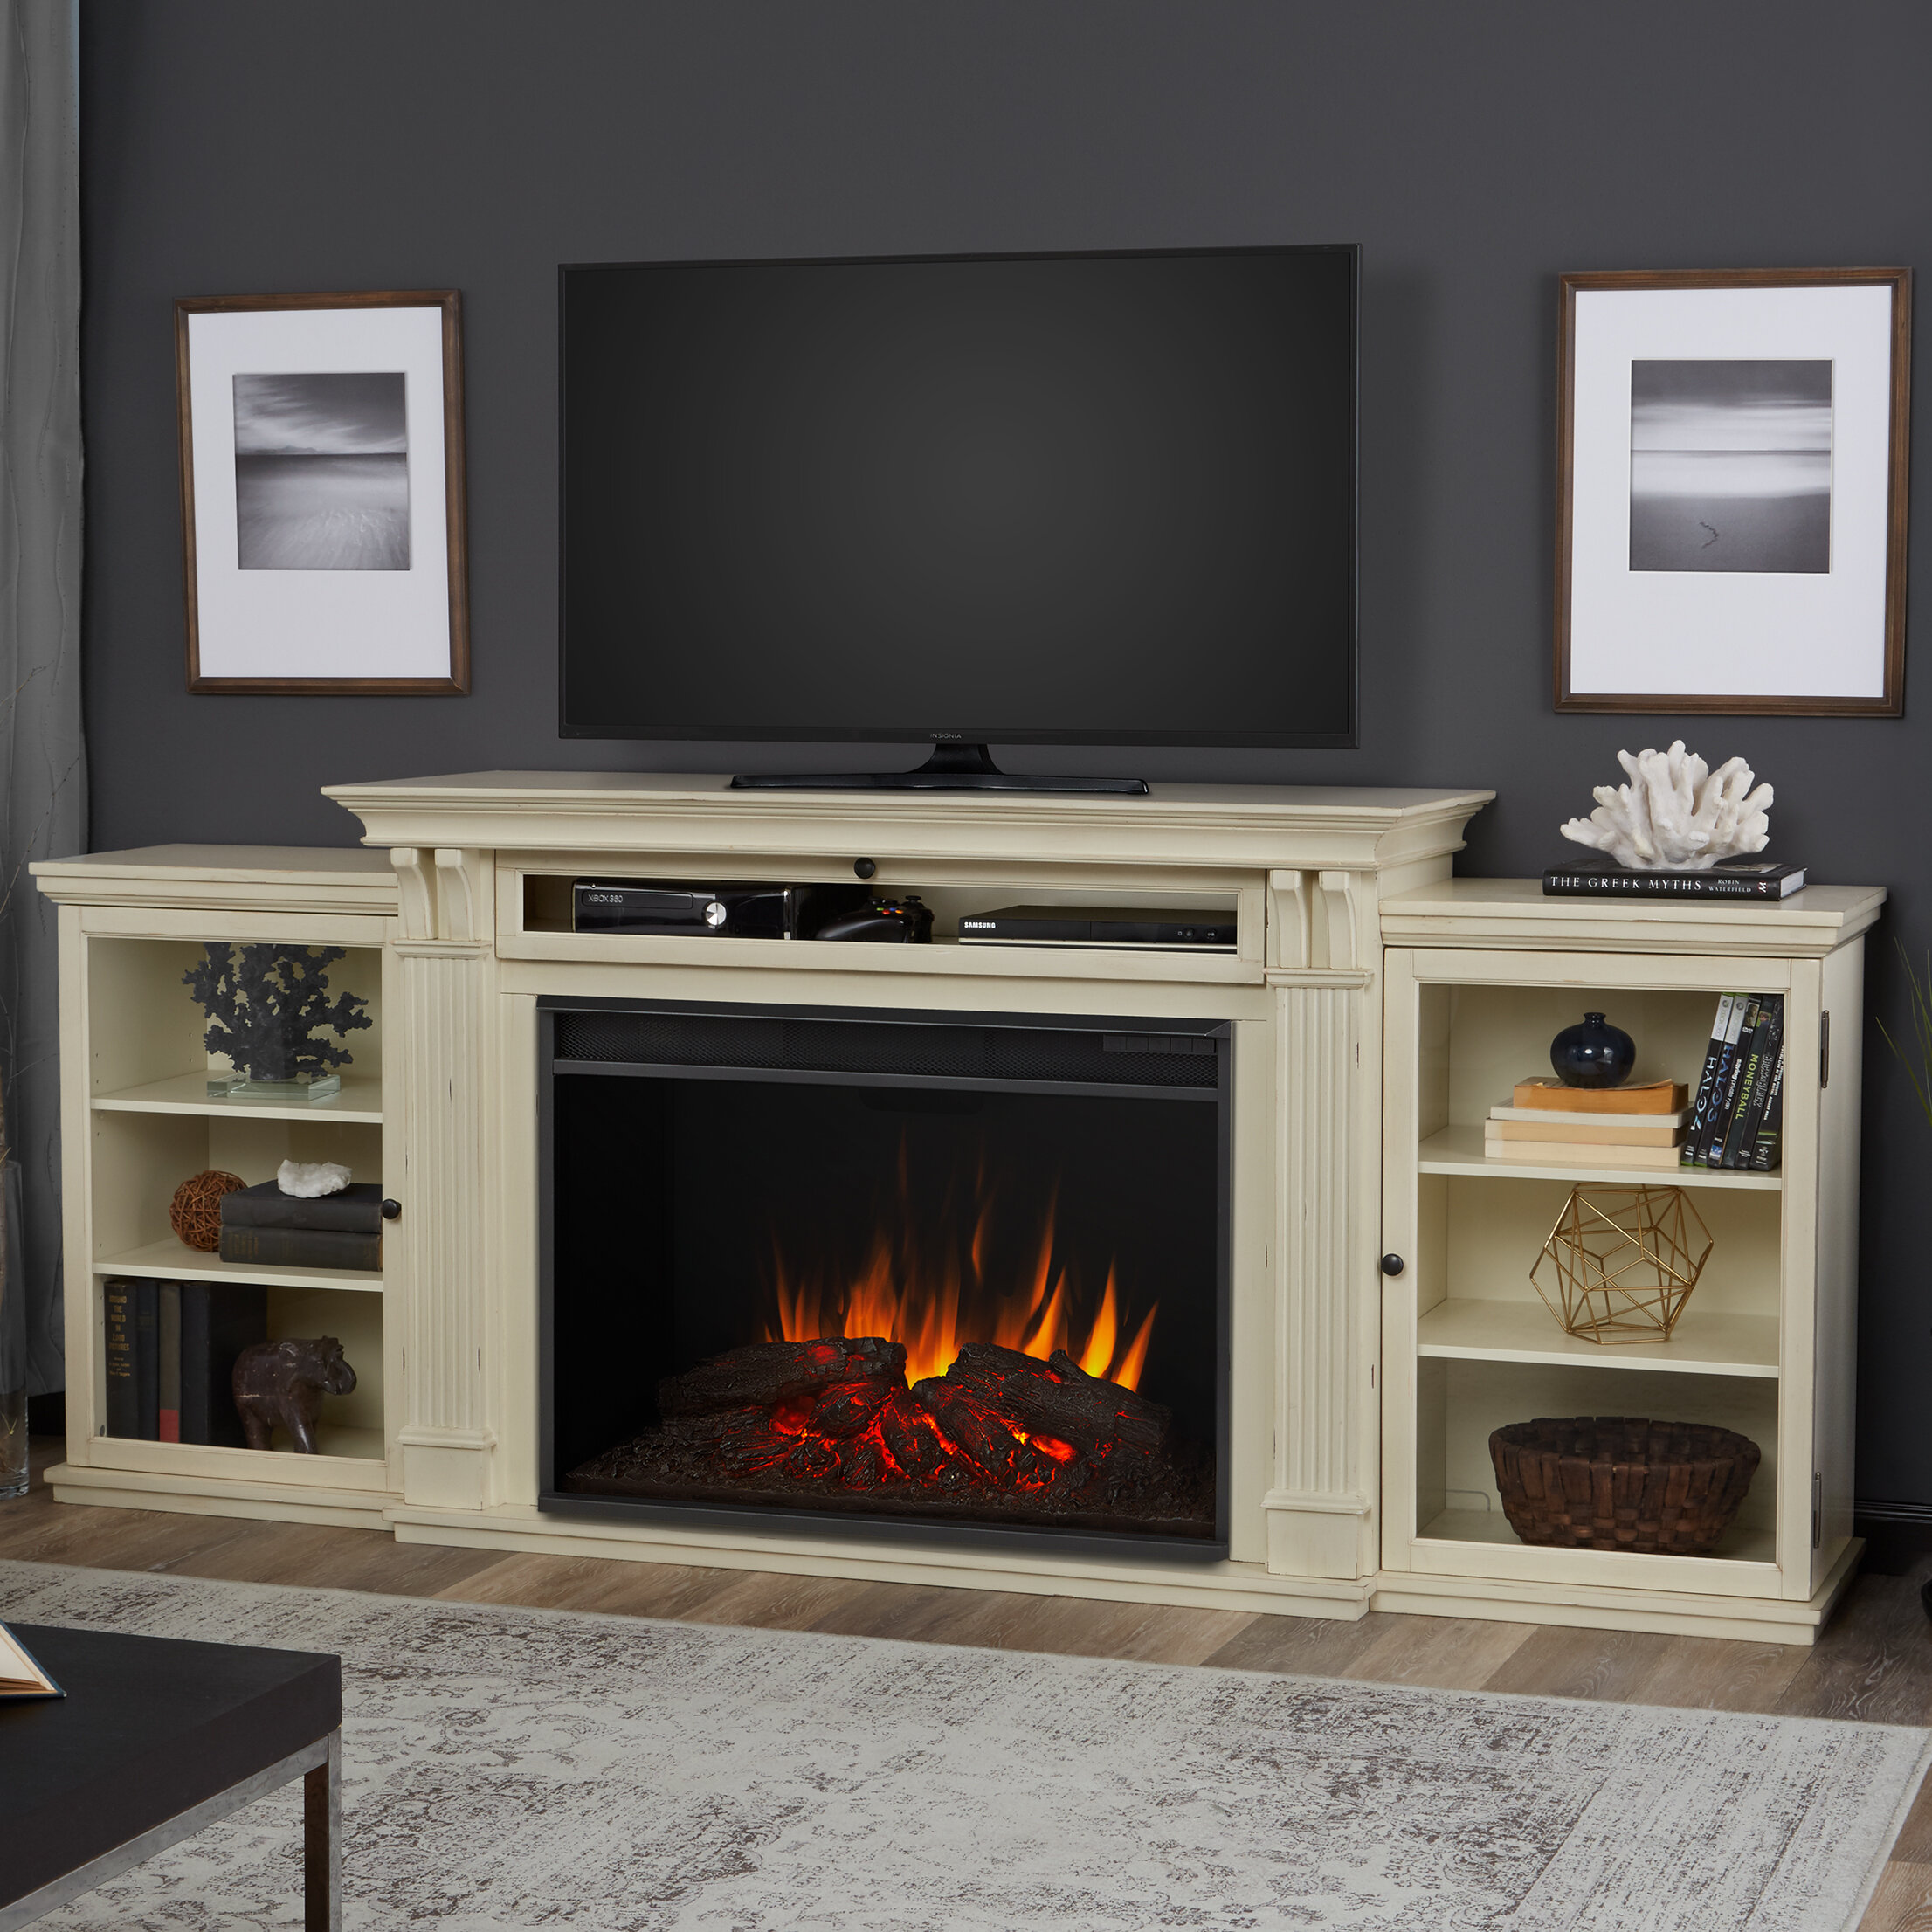 Real Flame Grand Tracey Tv Stand For Tvs Up To 84 With Fireplace